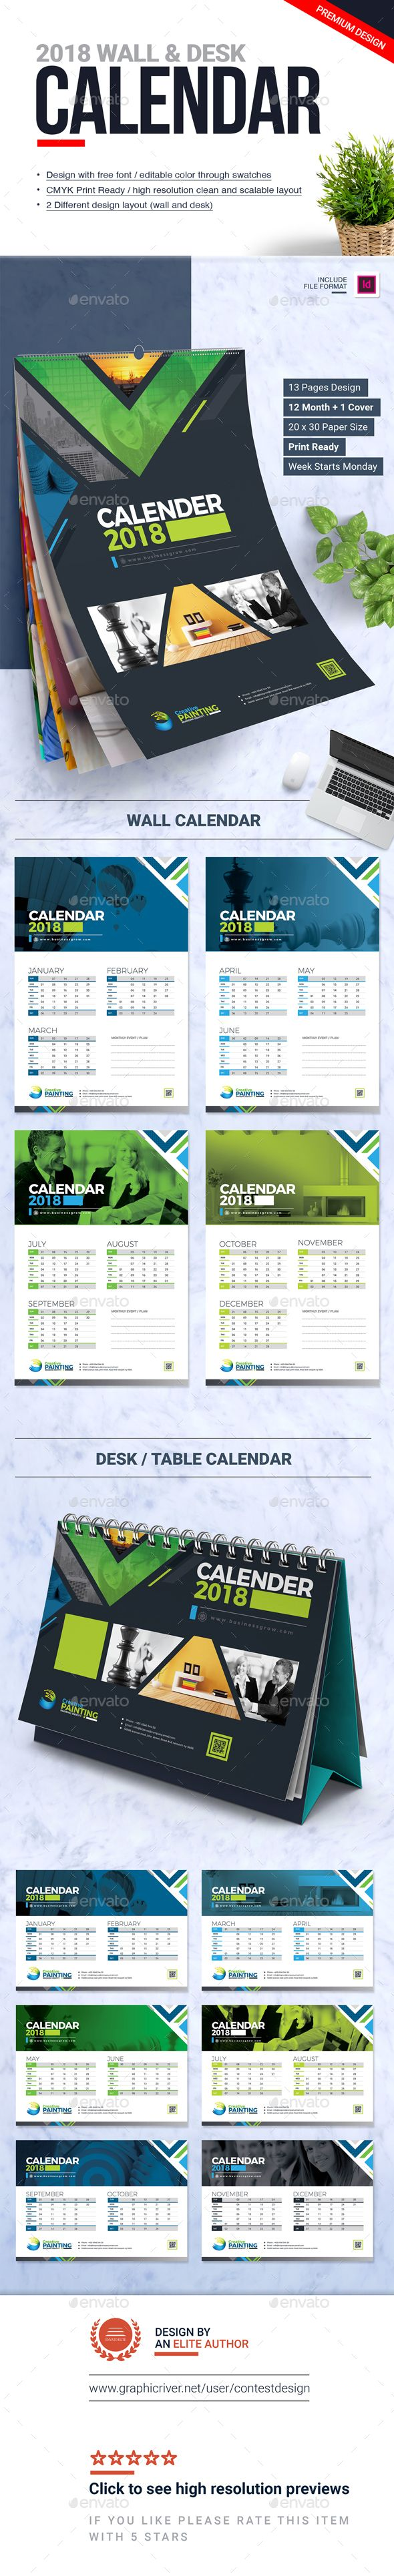 2018 Calendar Design Template InDesign INDD | Wall and Desk / Table ...